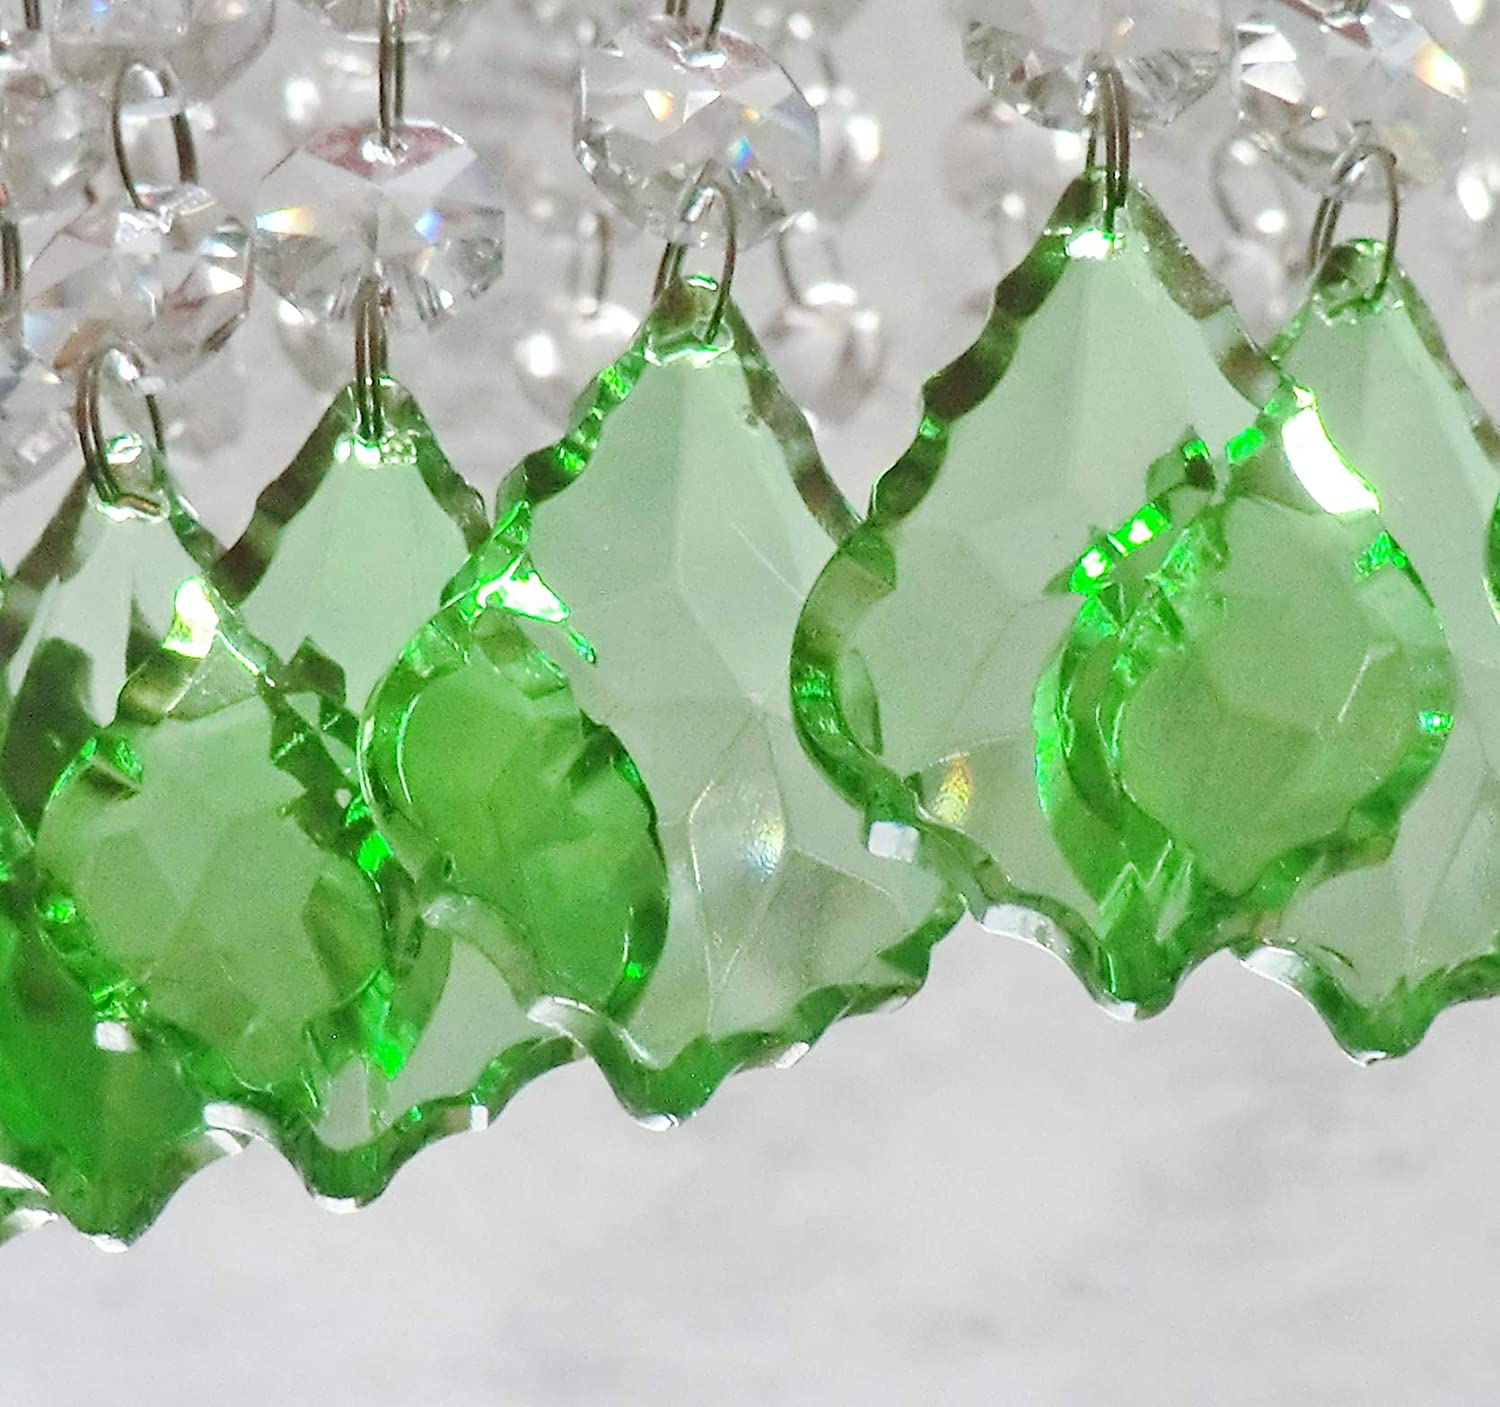 24 Sage Emerald Peacock Chandelier Drops Cut Glass Crystals Droplets Beads Christmas Tree Ornaments Decorations Prisms Art Deco Retro Beads